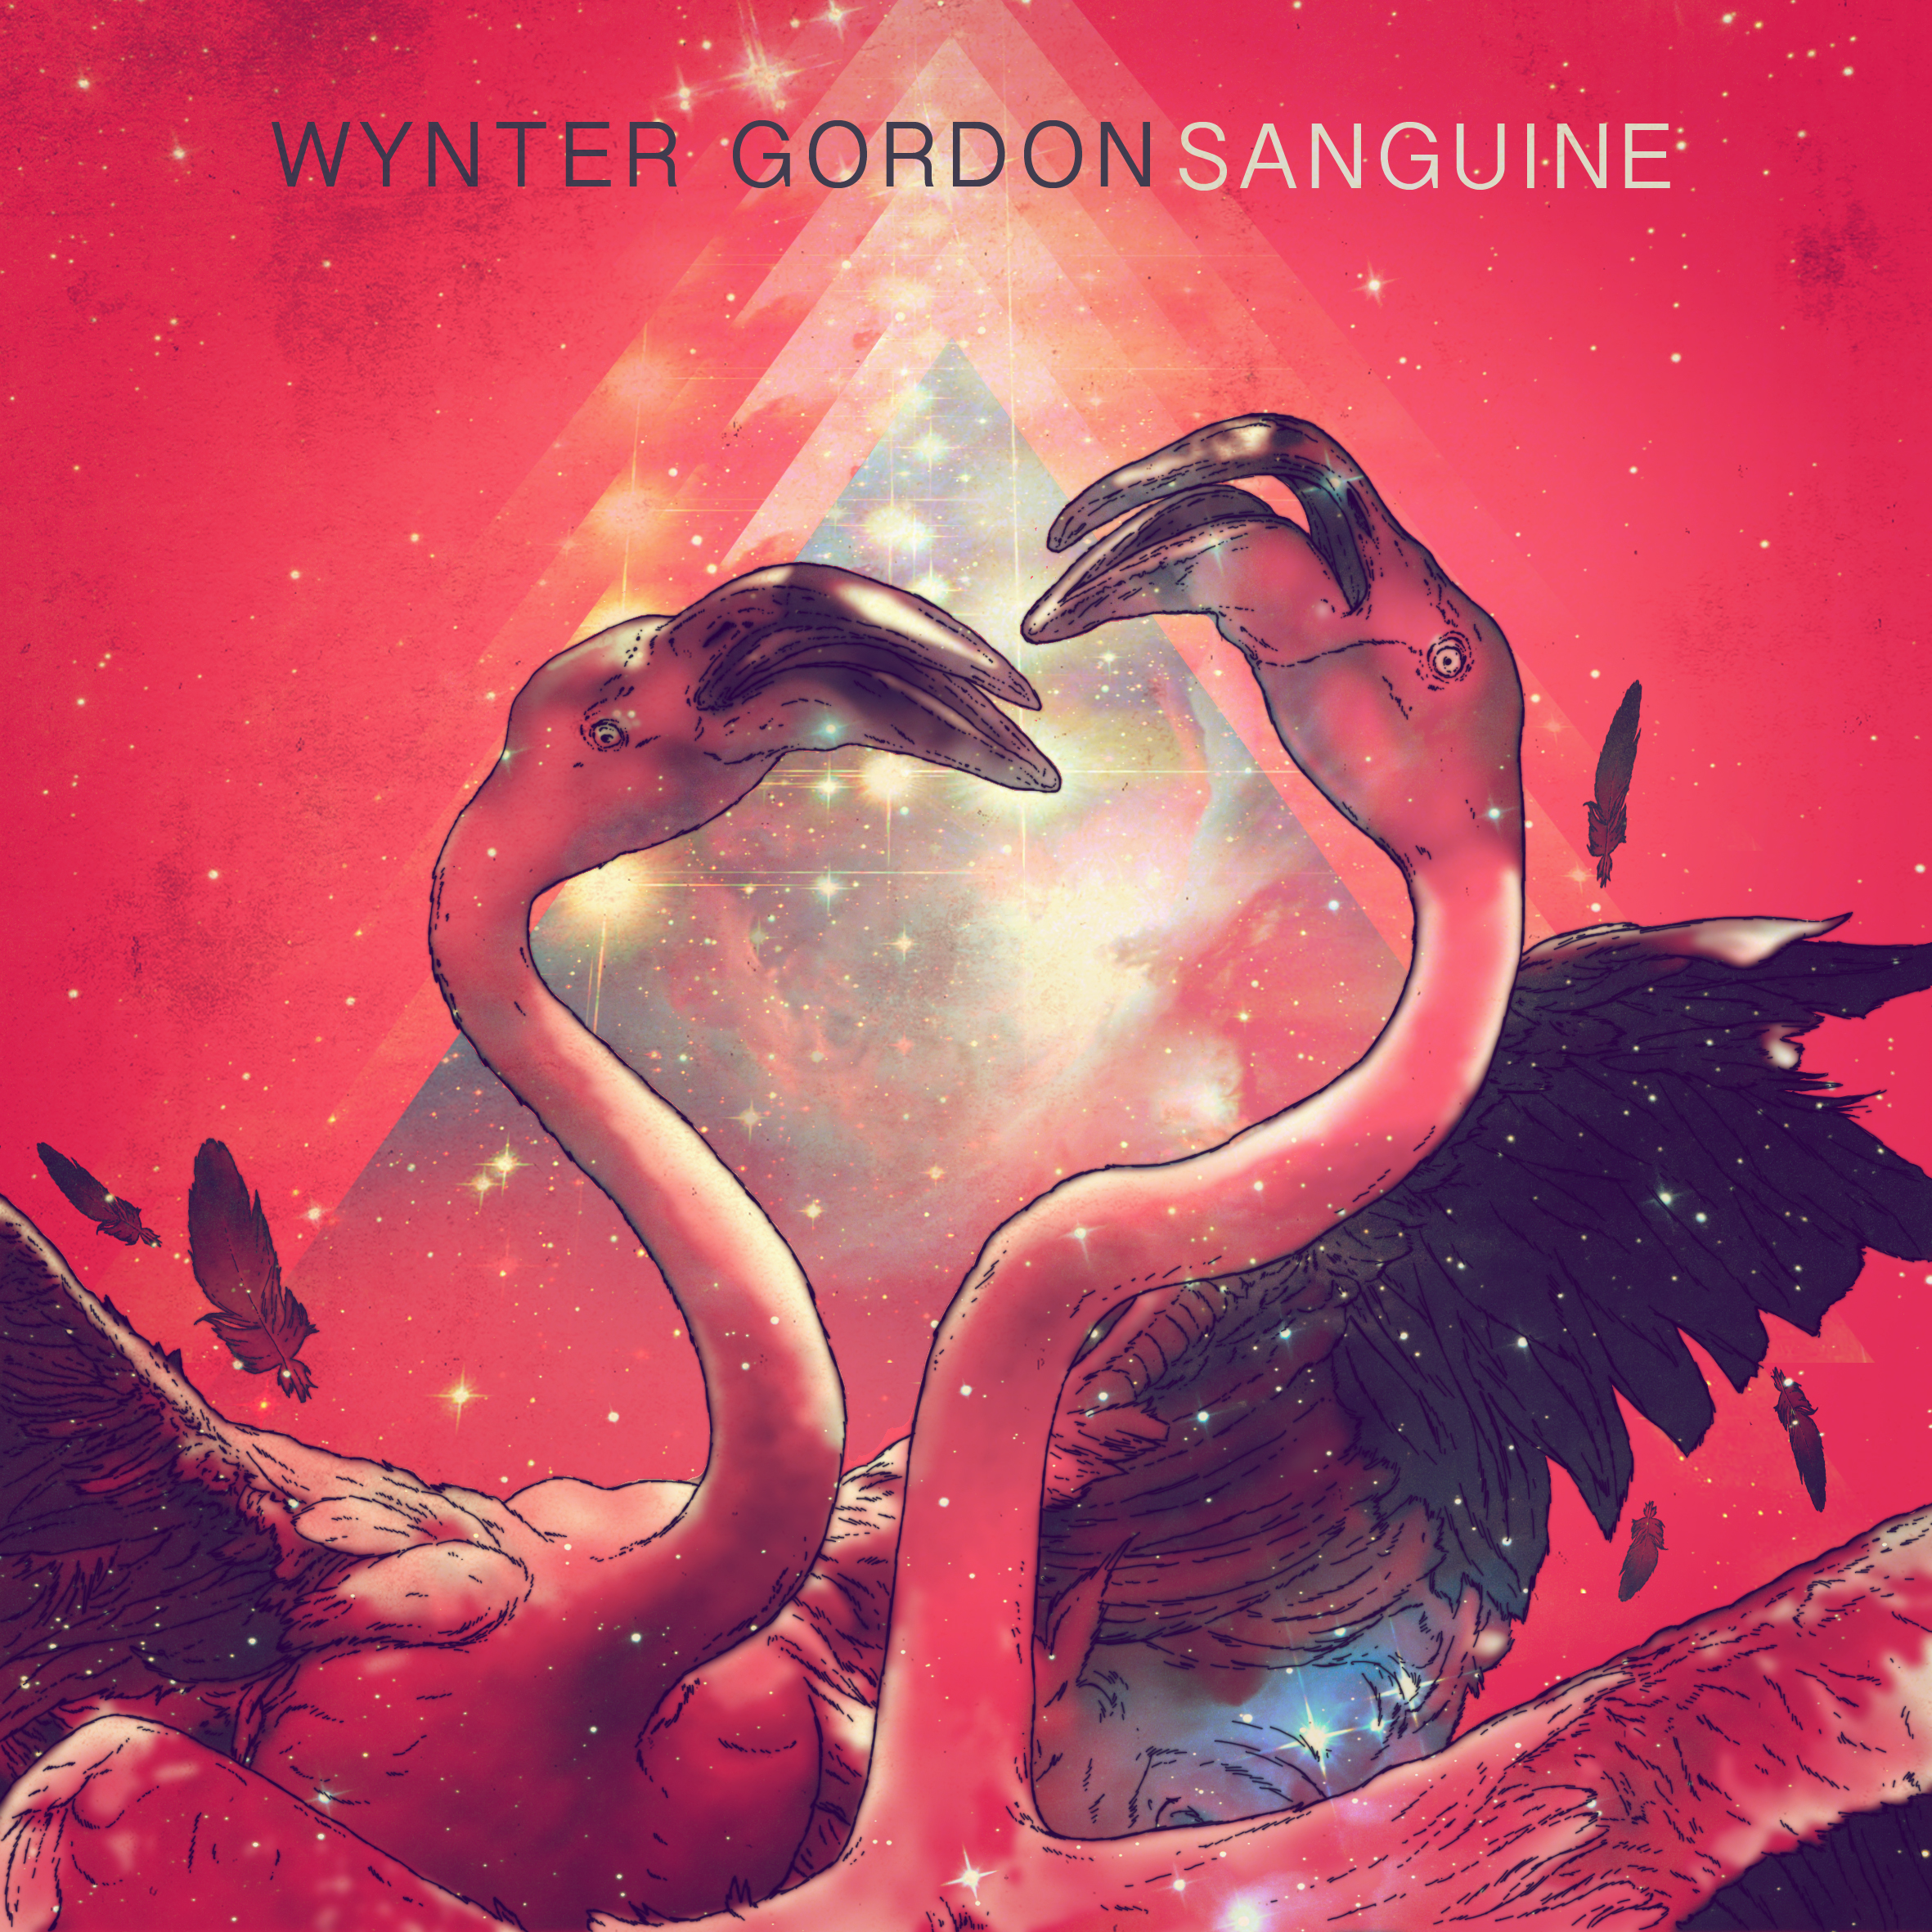 wynter gordon Human Condition Sanguine